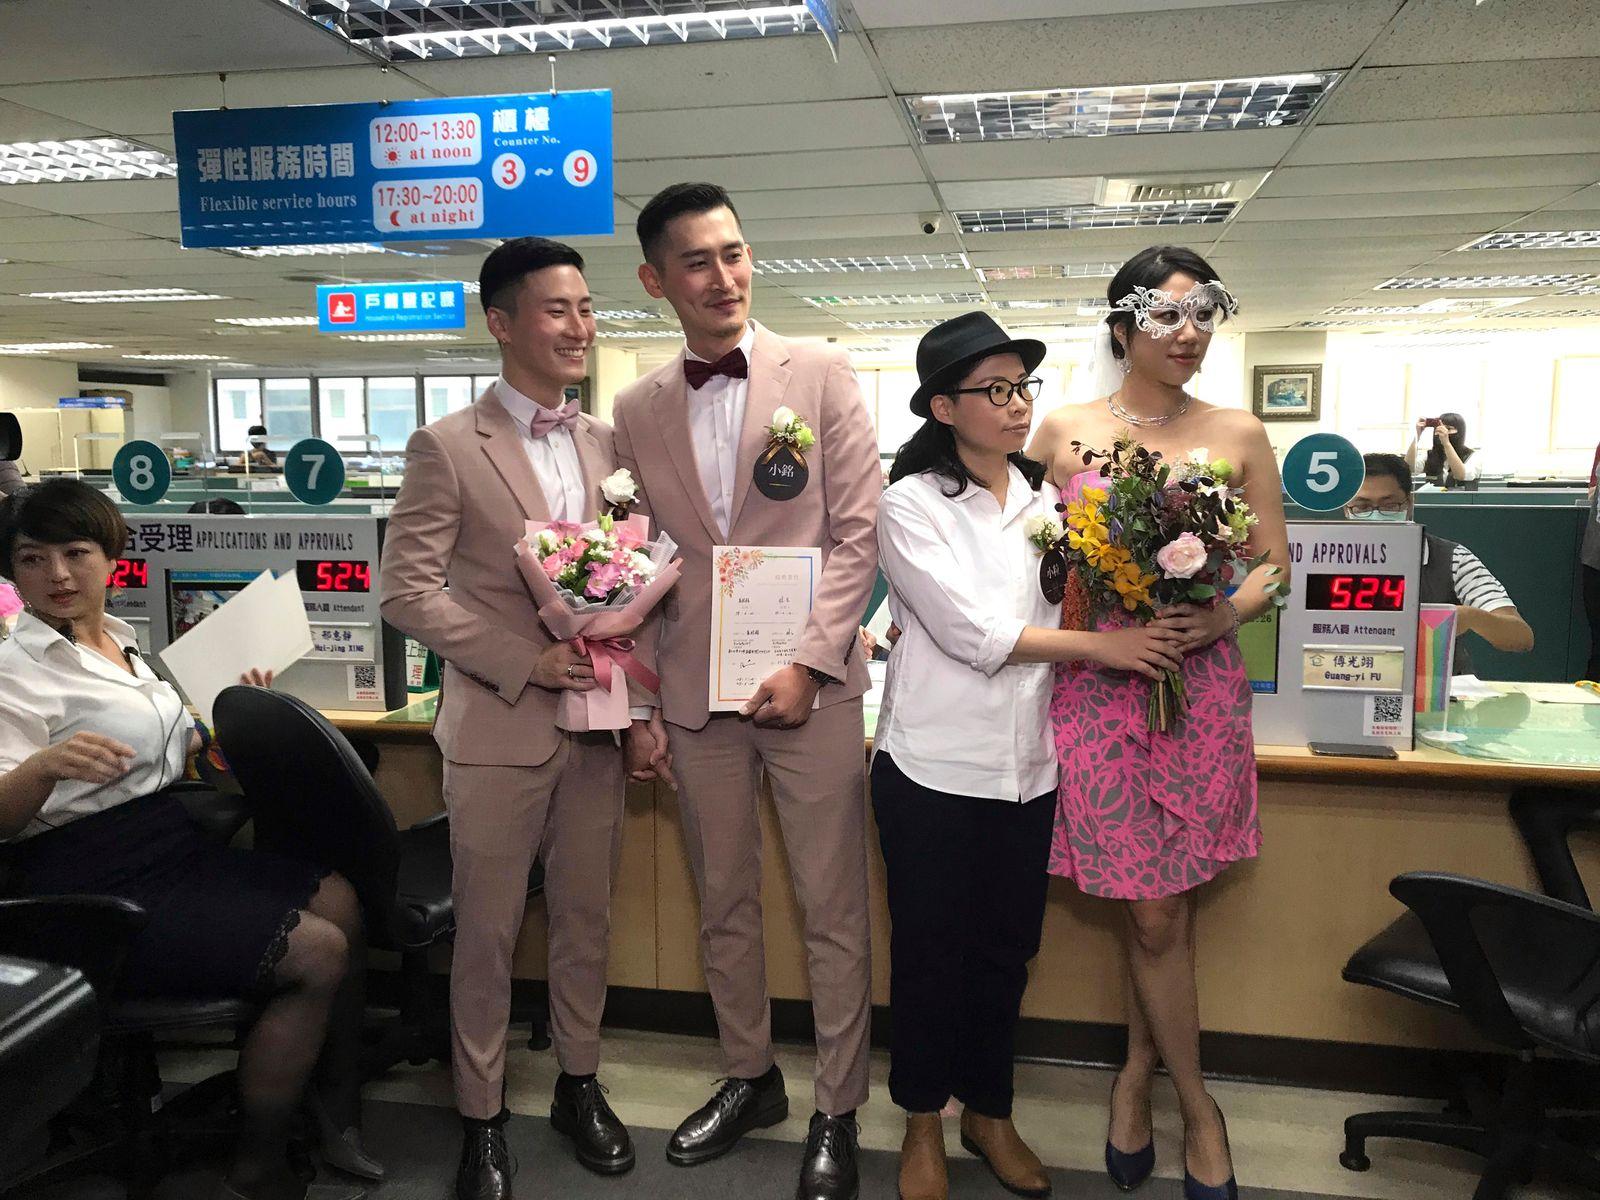 Two same-sex couples pose for a photo at the household registration office to register their legal marriage in Xingyi District in Taipei, Taiwan, Friday, May 24, 2019.{ } (AP Photo/Johnson Lai)